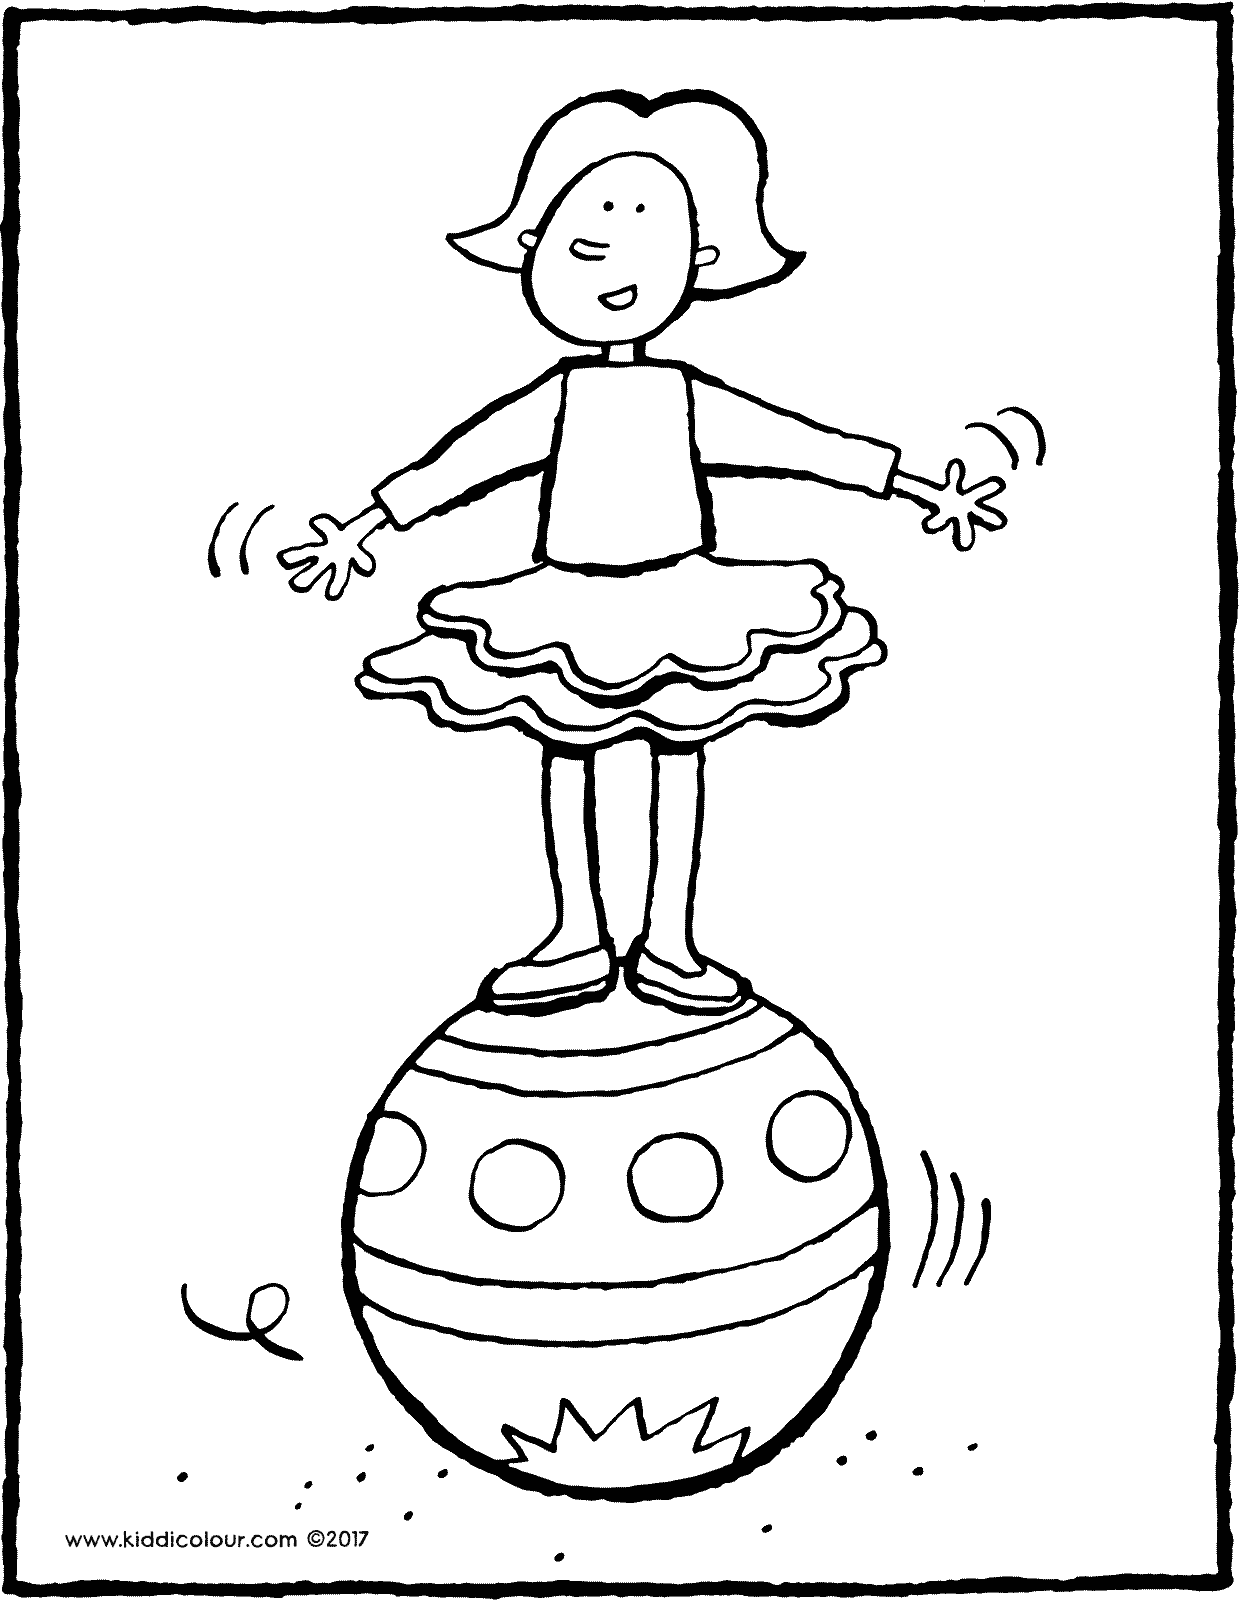 Emma balancing on a ball colouring page drawing picture 01V